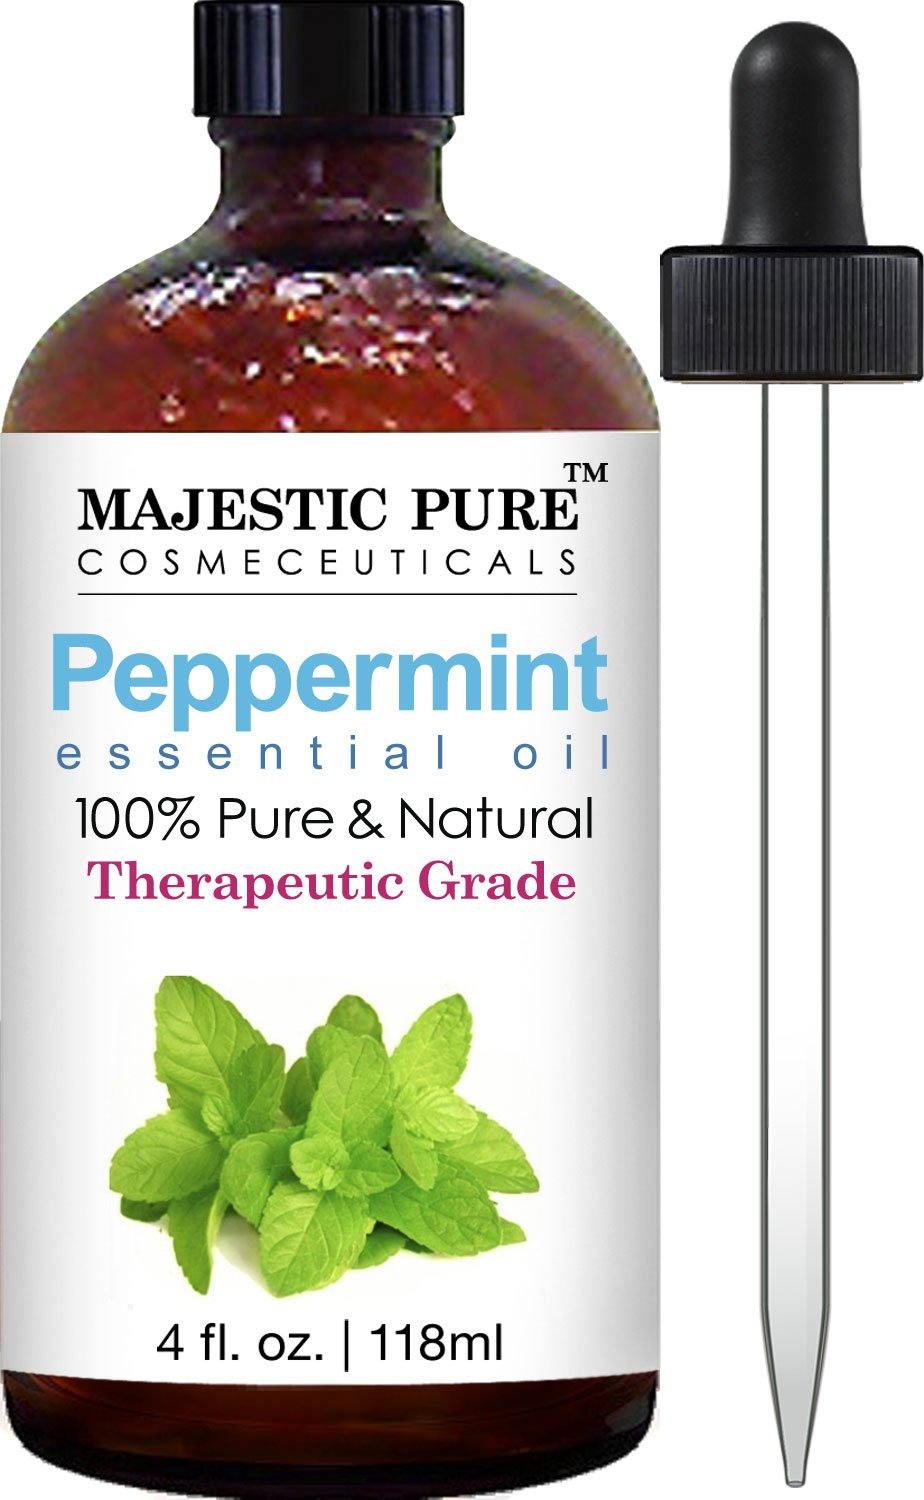 image of Peppermint oil to get rid of spiders